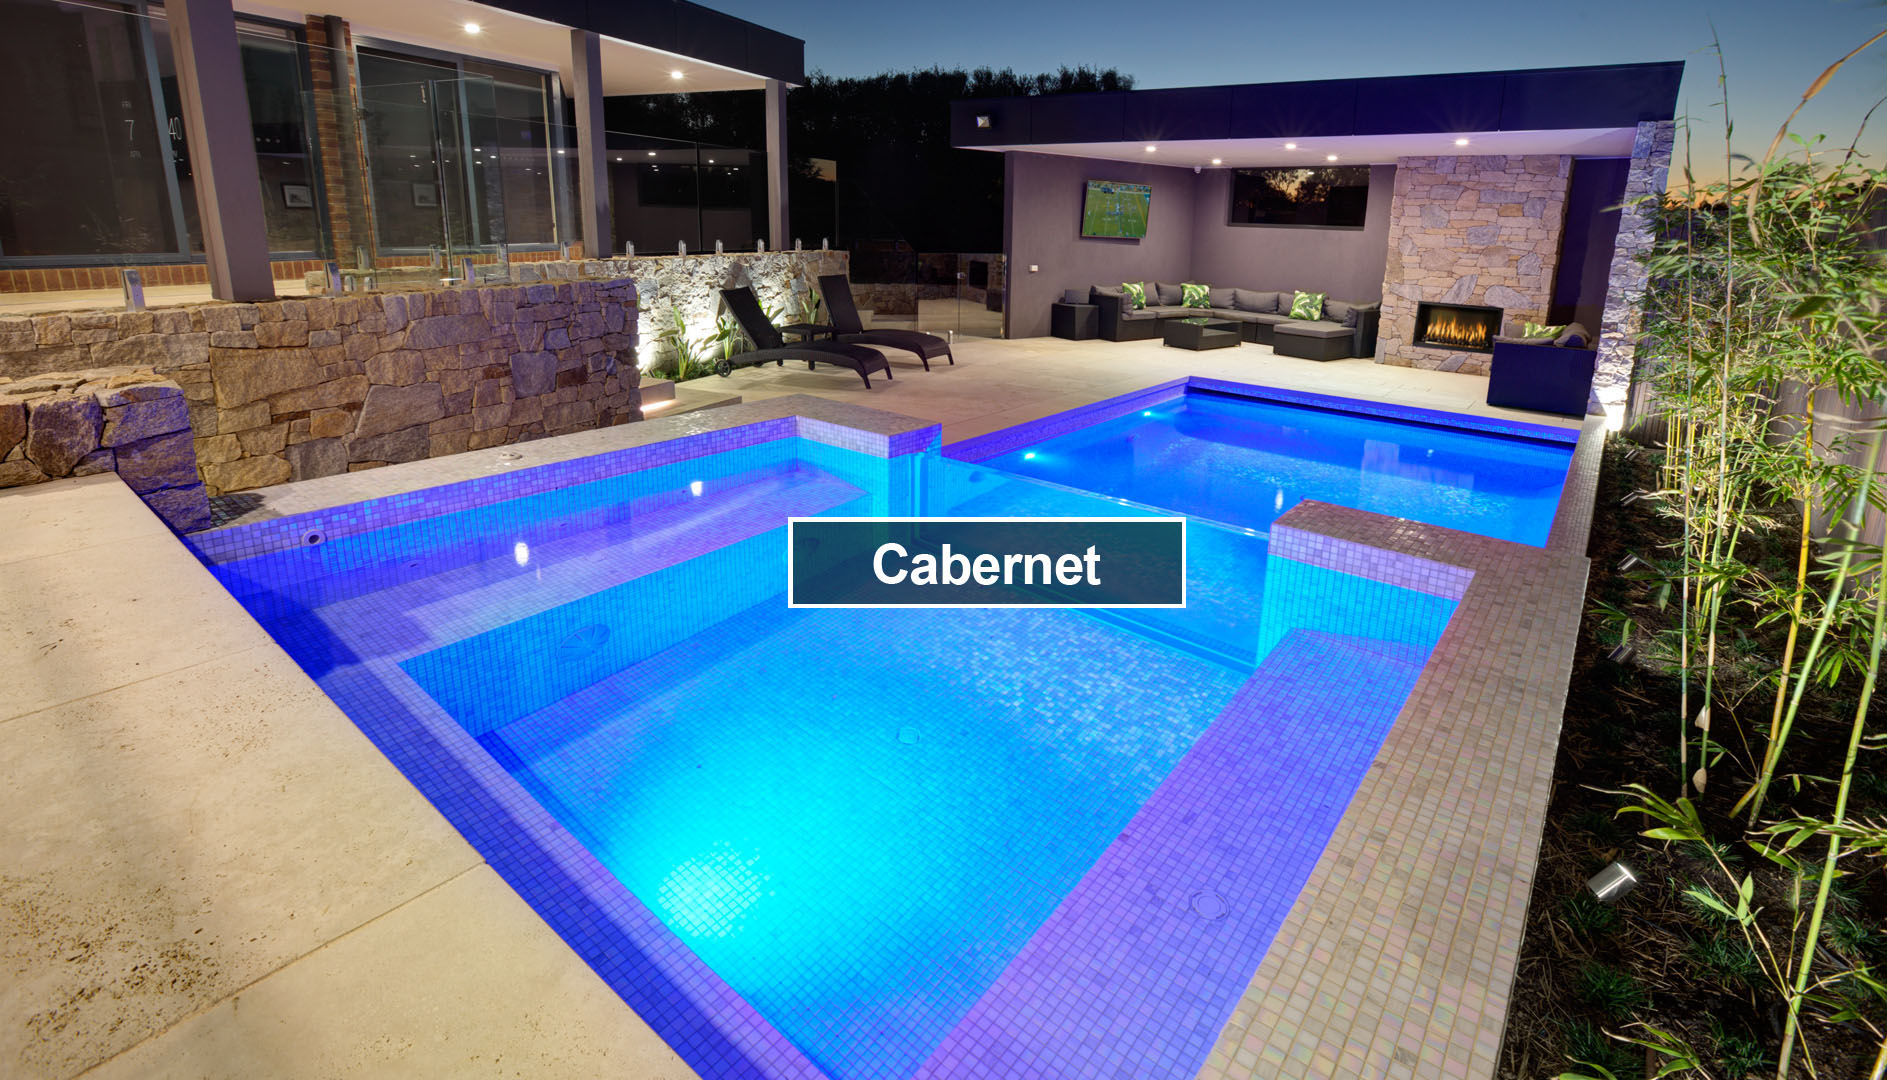 Cabernet - Kiama Pools Swimming Pool Project